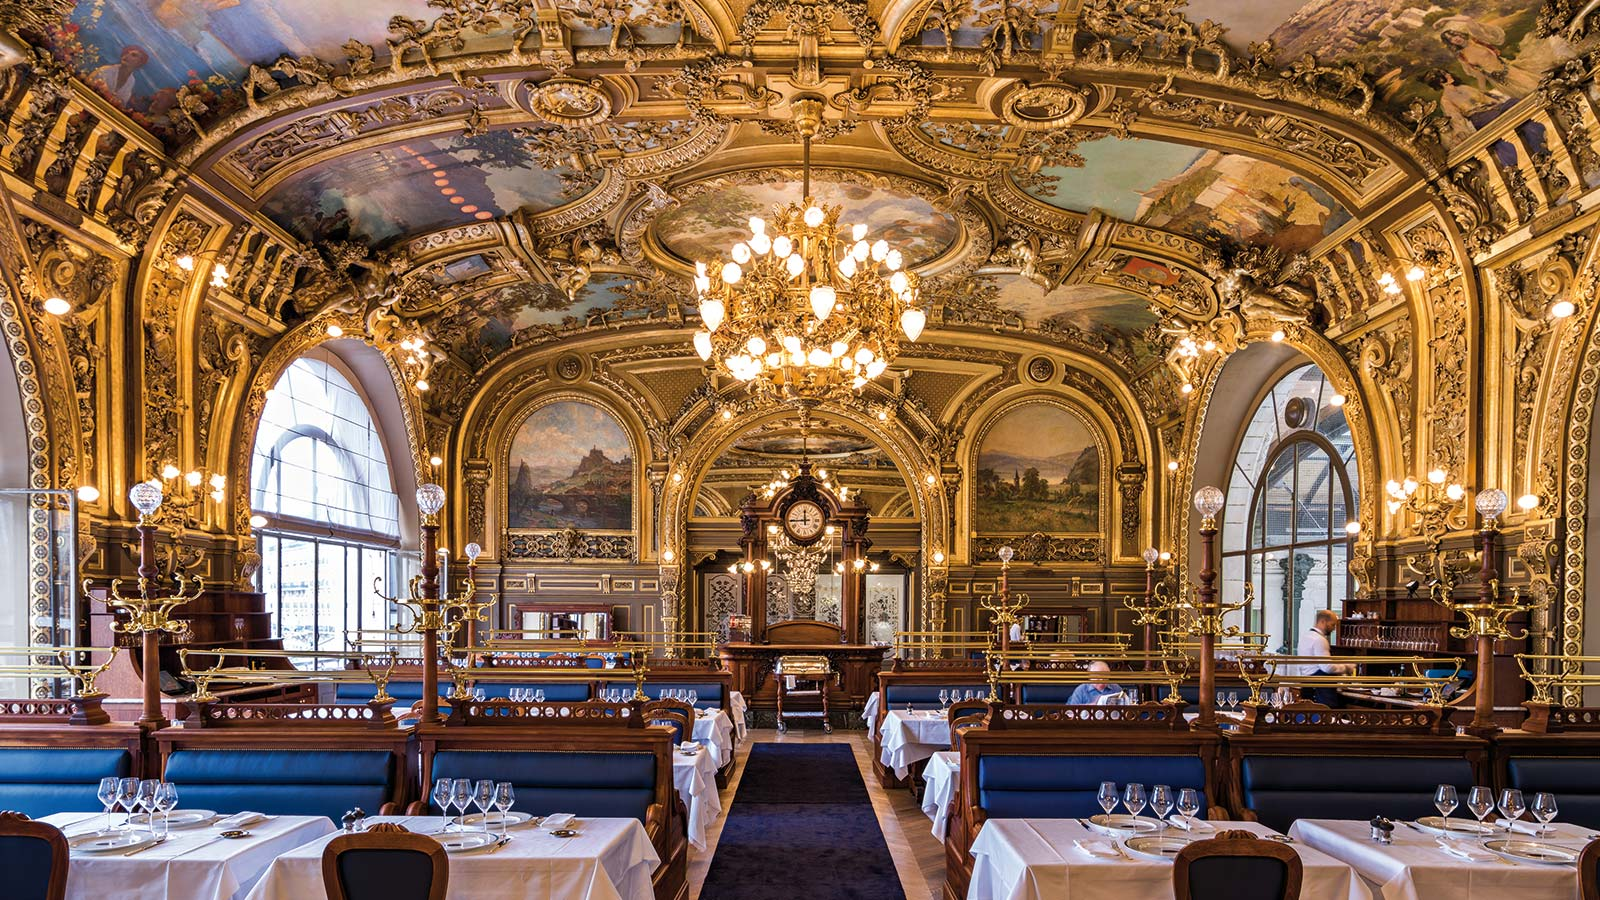 Comedor de Le Train Bleu